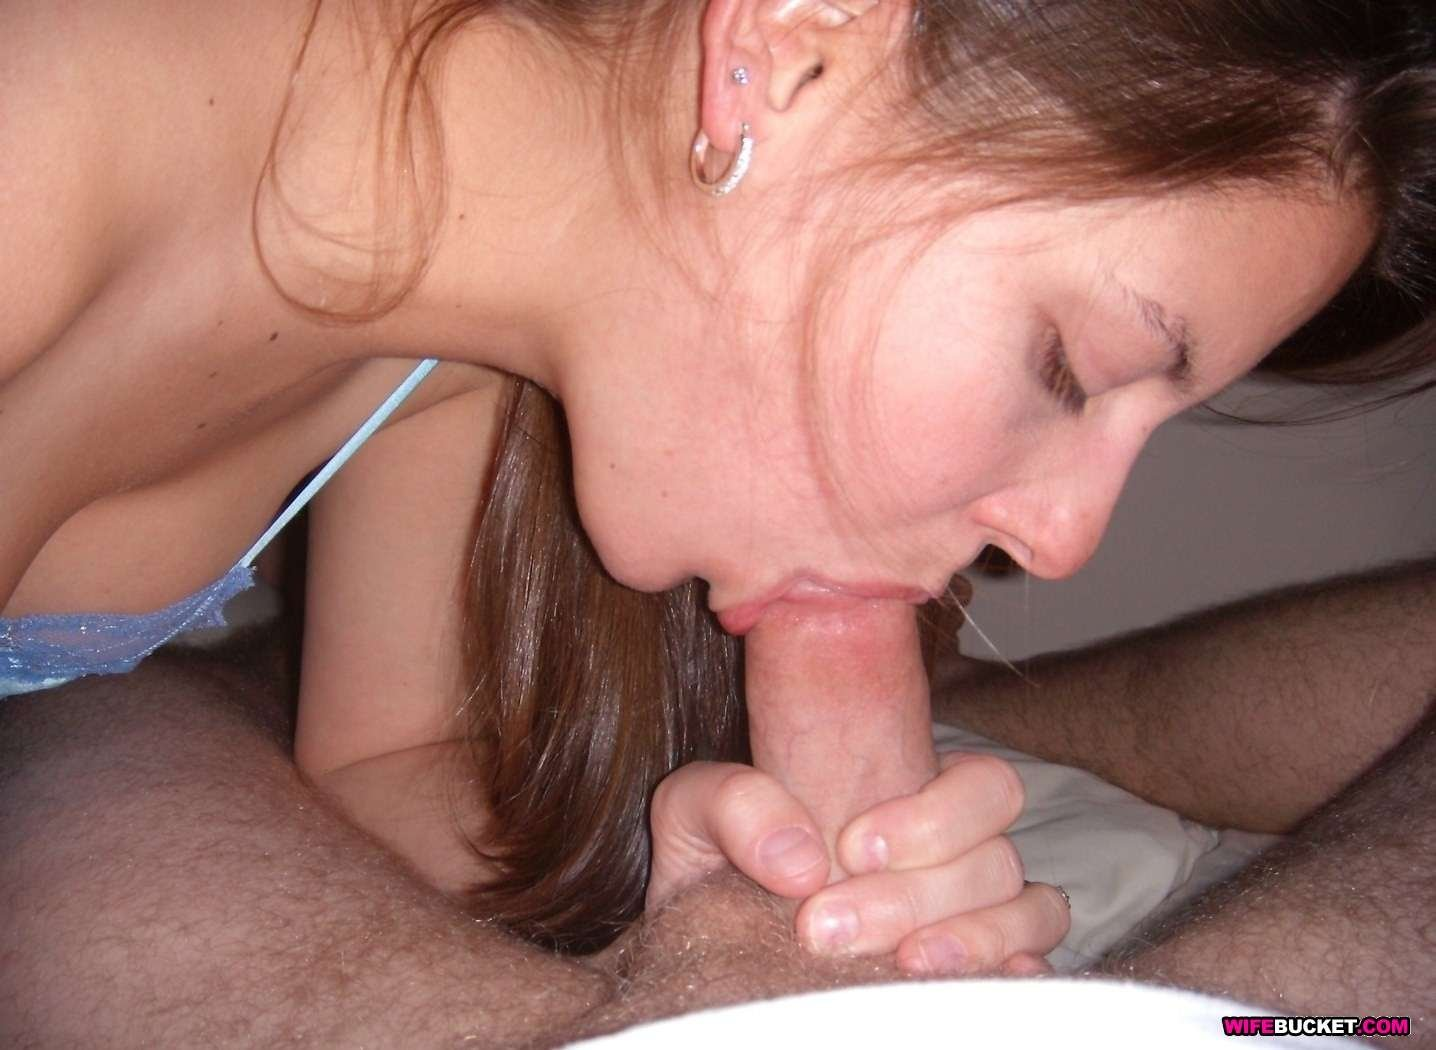 best of vagina licking sex toy